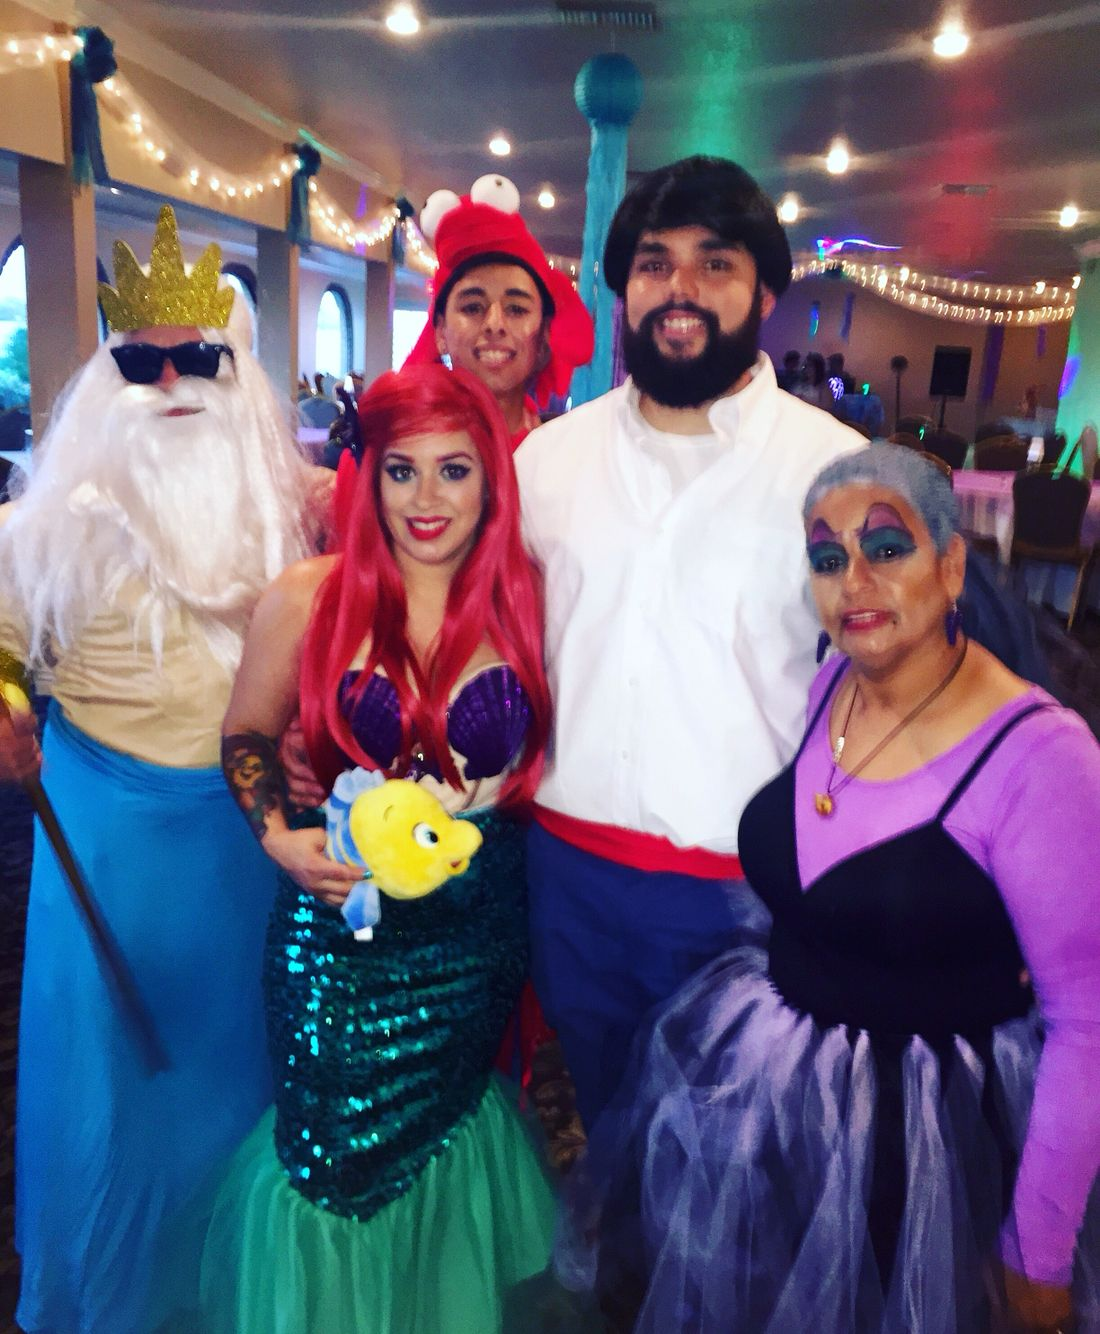 Halloween costumes, the little mermaid, under the sea party